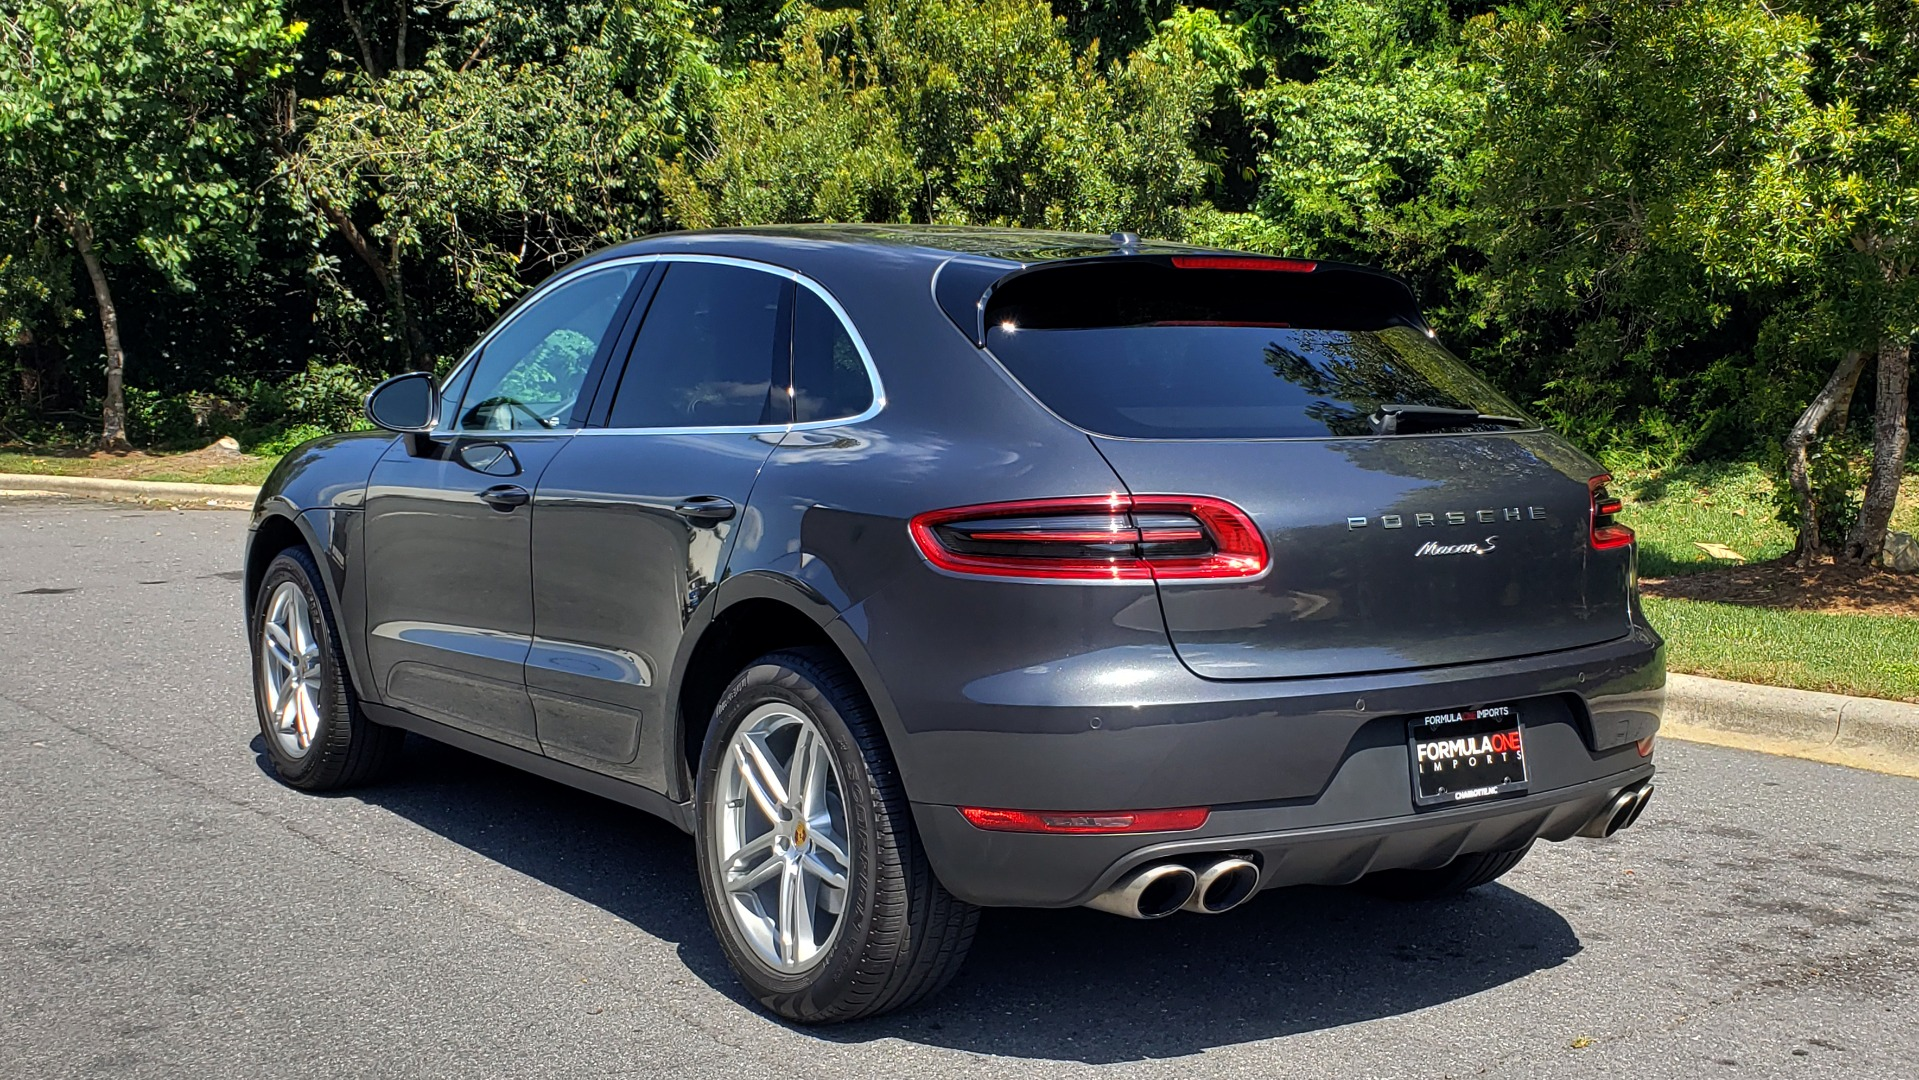 Used 2017 Porsche MACAN S PREMIUM PKG / NAV / BOSE / SUNROOF / REARVIEW for sale Sold at Formula Imports in Charlotte NC 28227 5